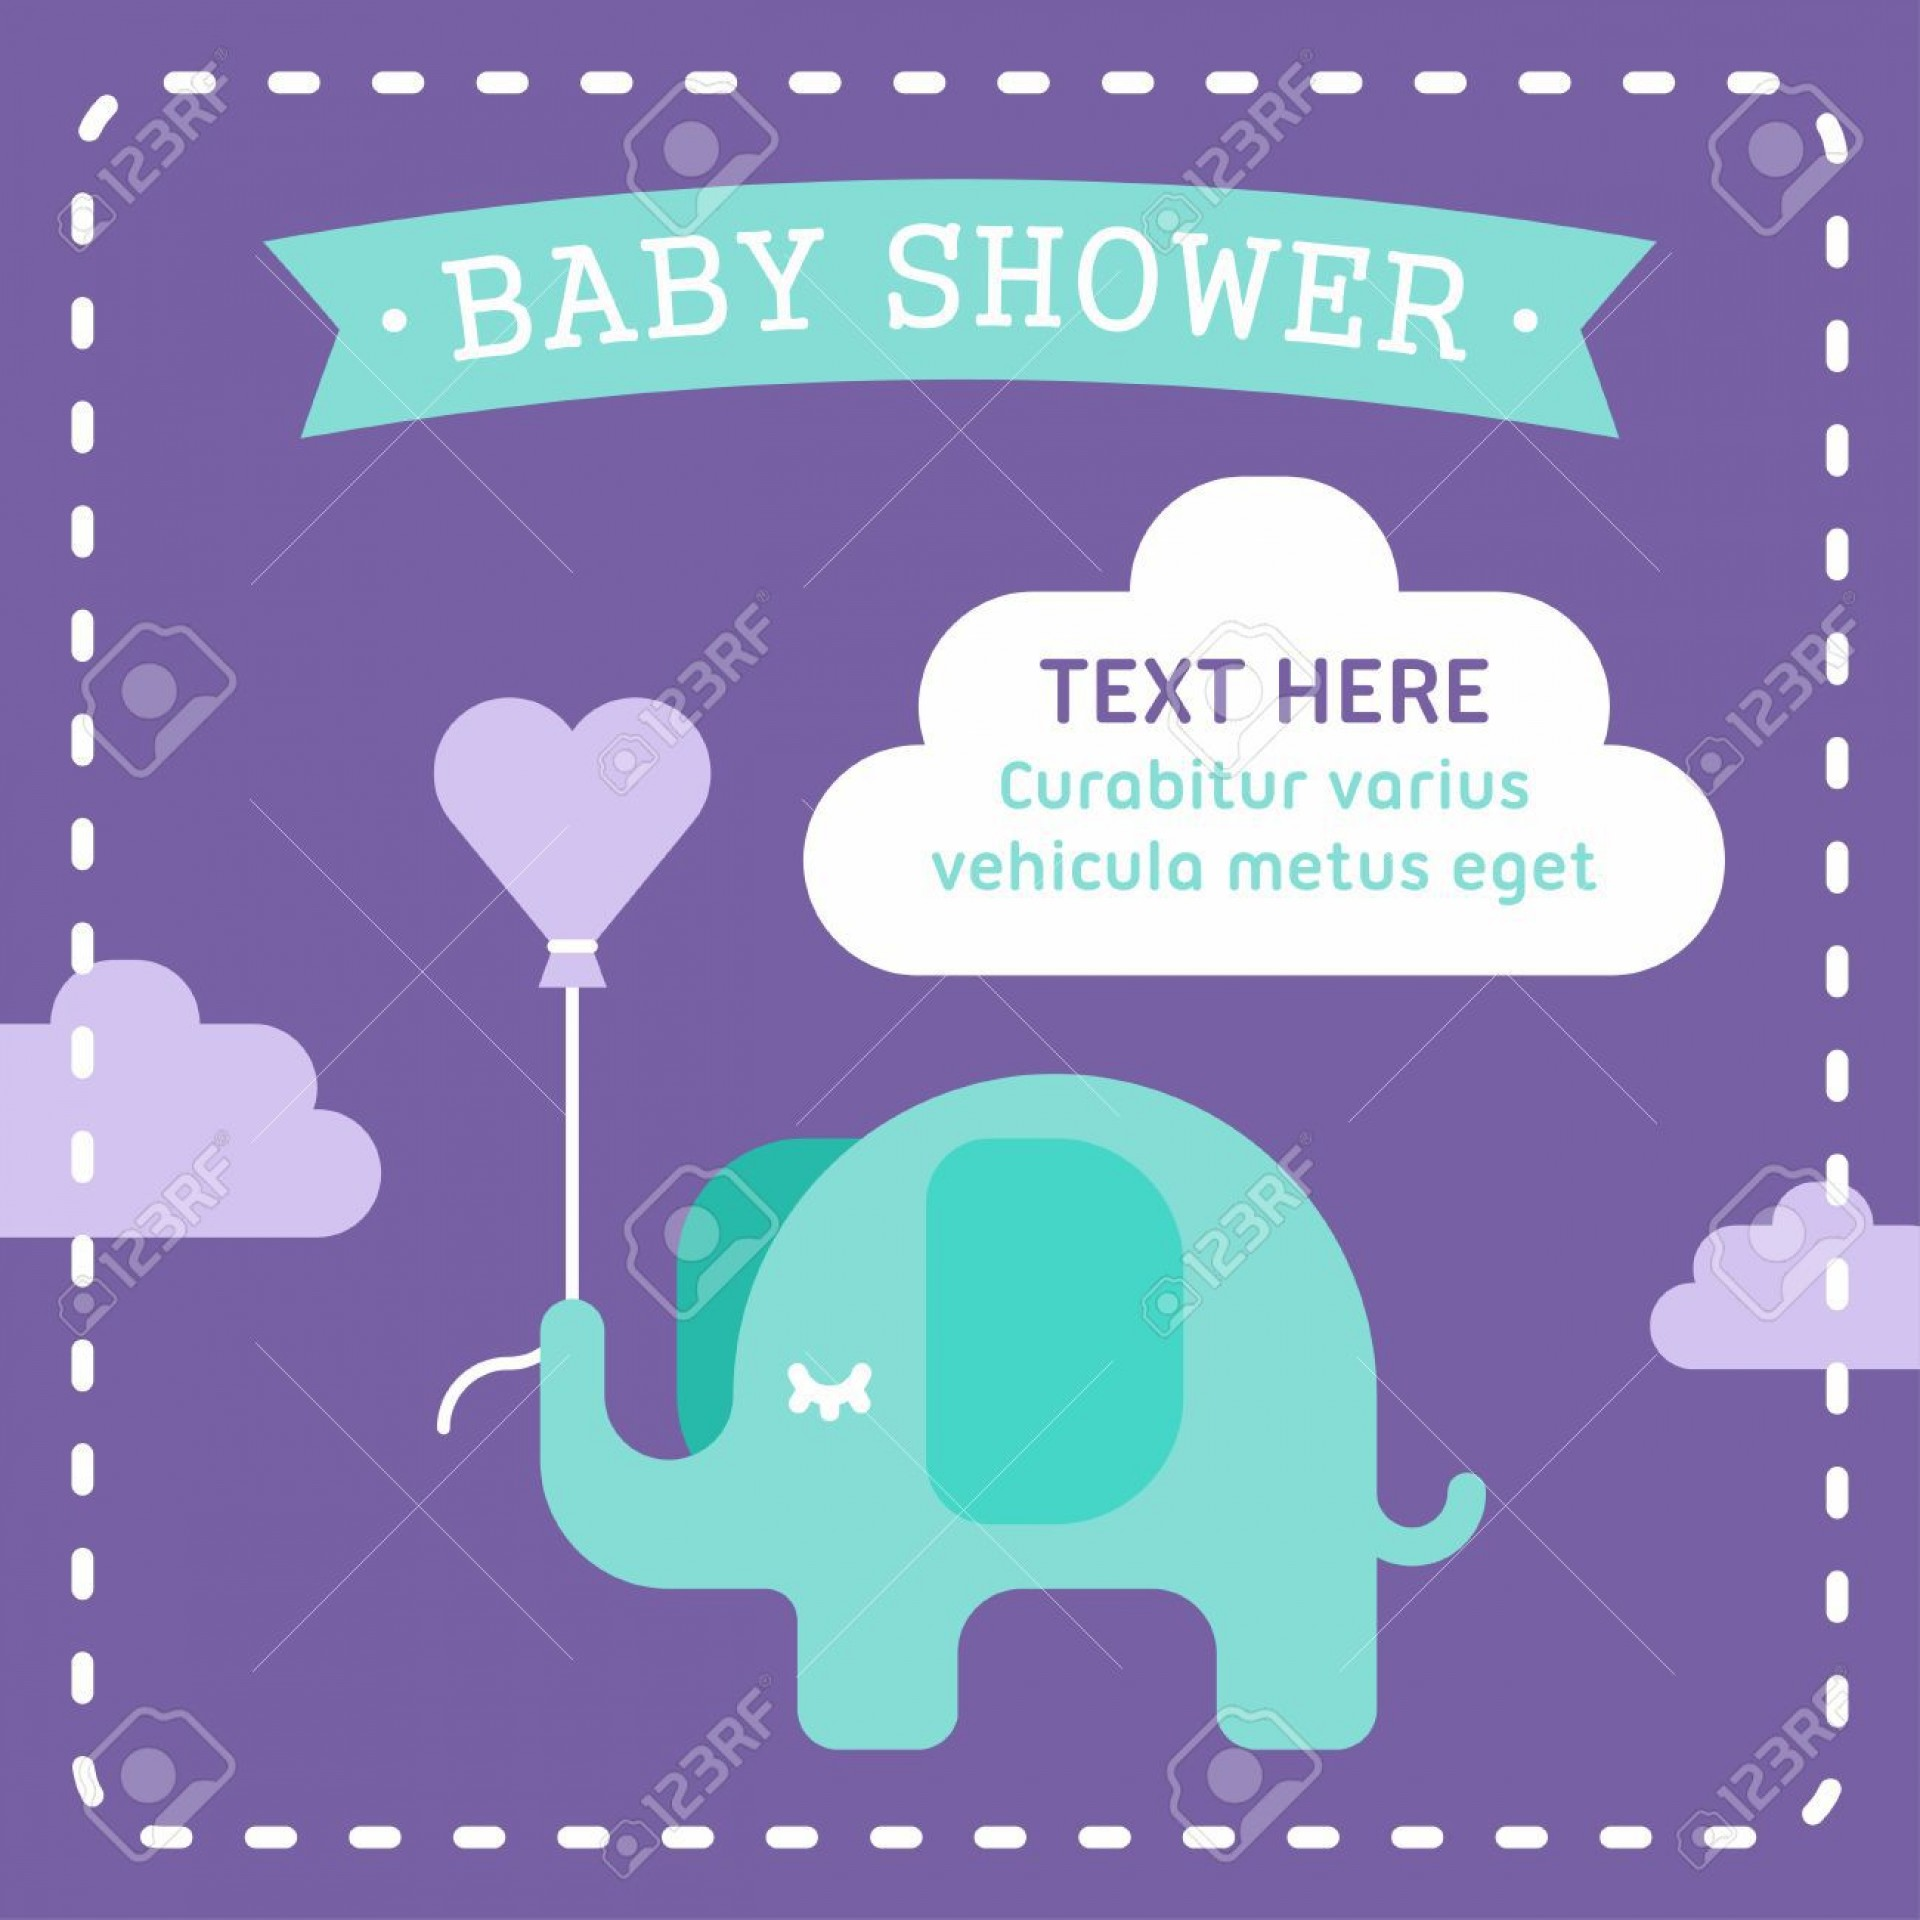 004 Shocking Elephant Girl Baby Shower Invitation Template High Resolution  Templates Pink1920